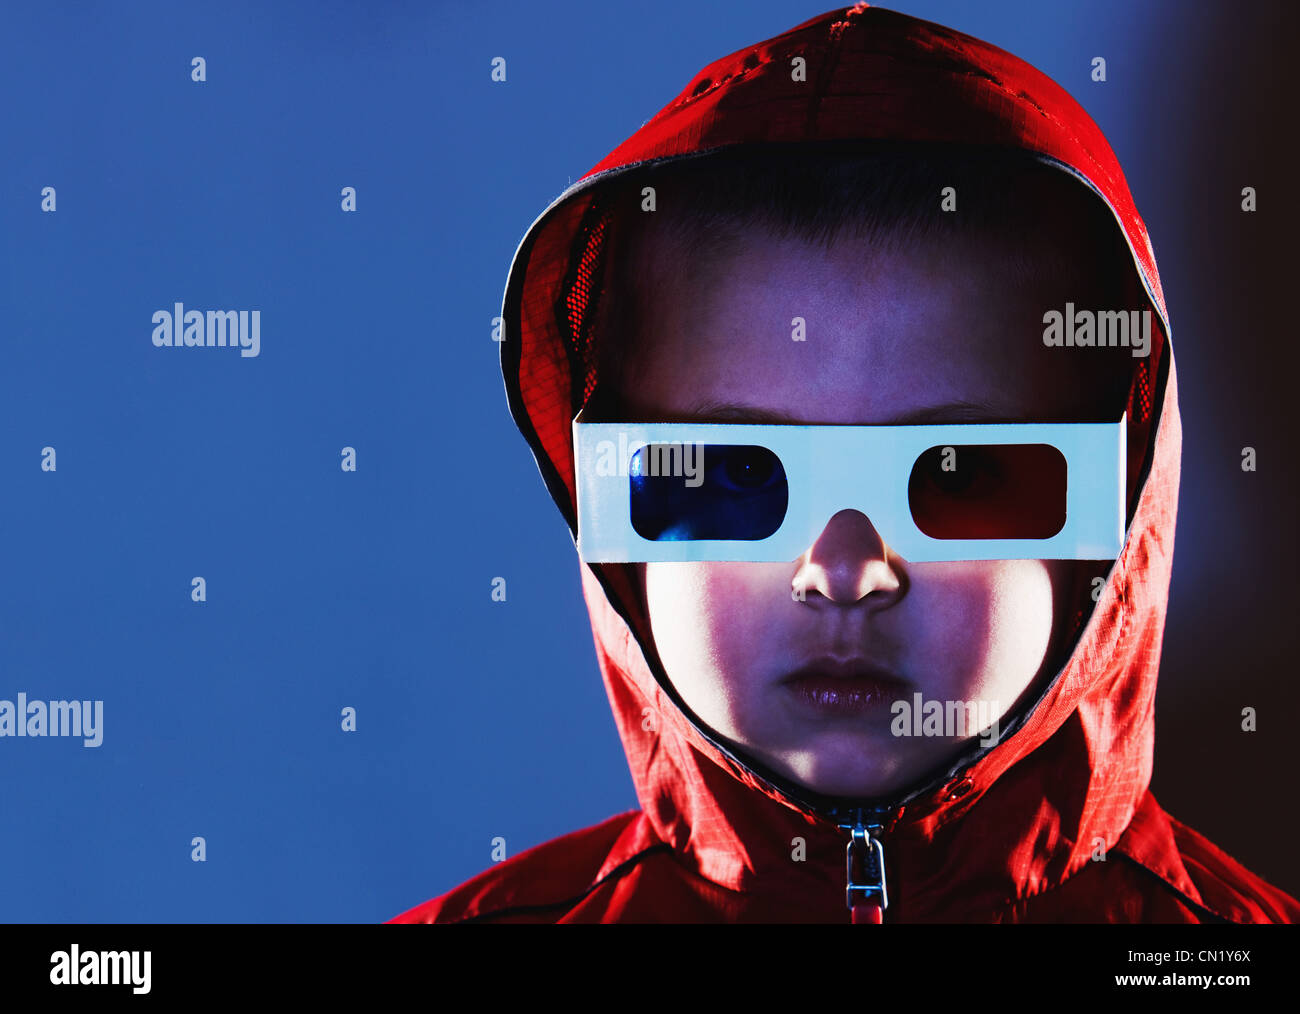 Young boy wearing 3d glasses and red hooded top - Stock Image